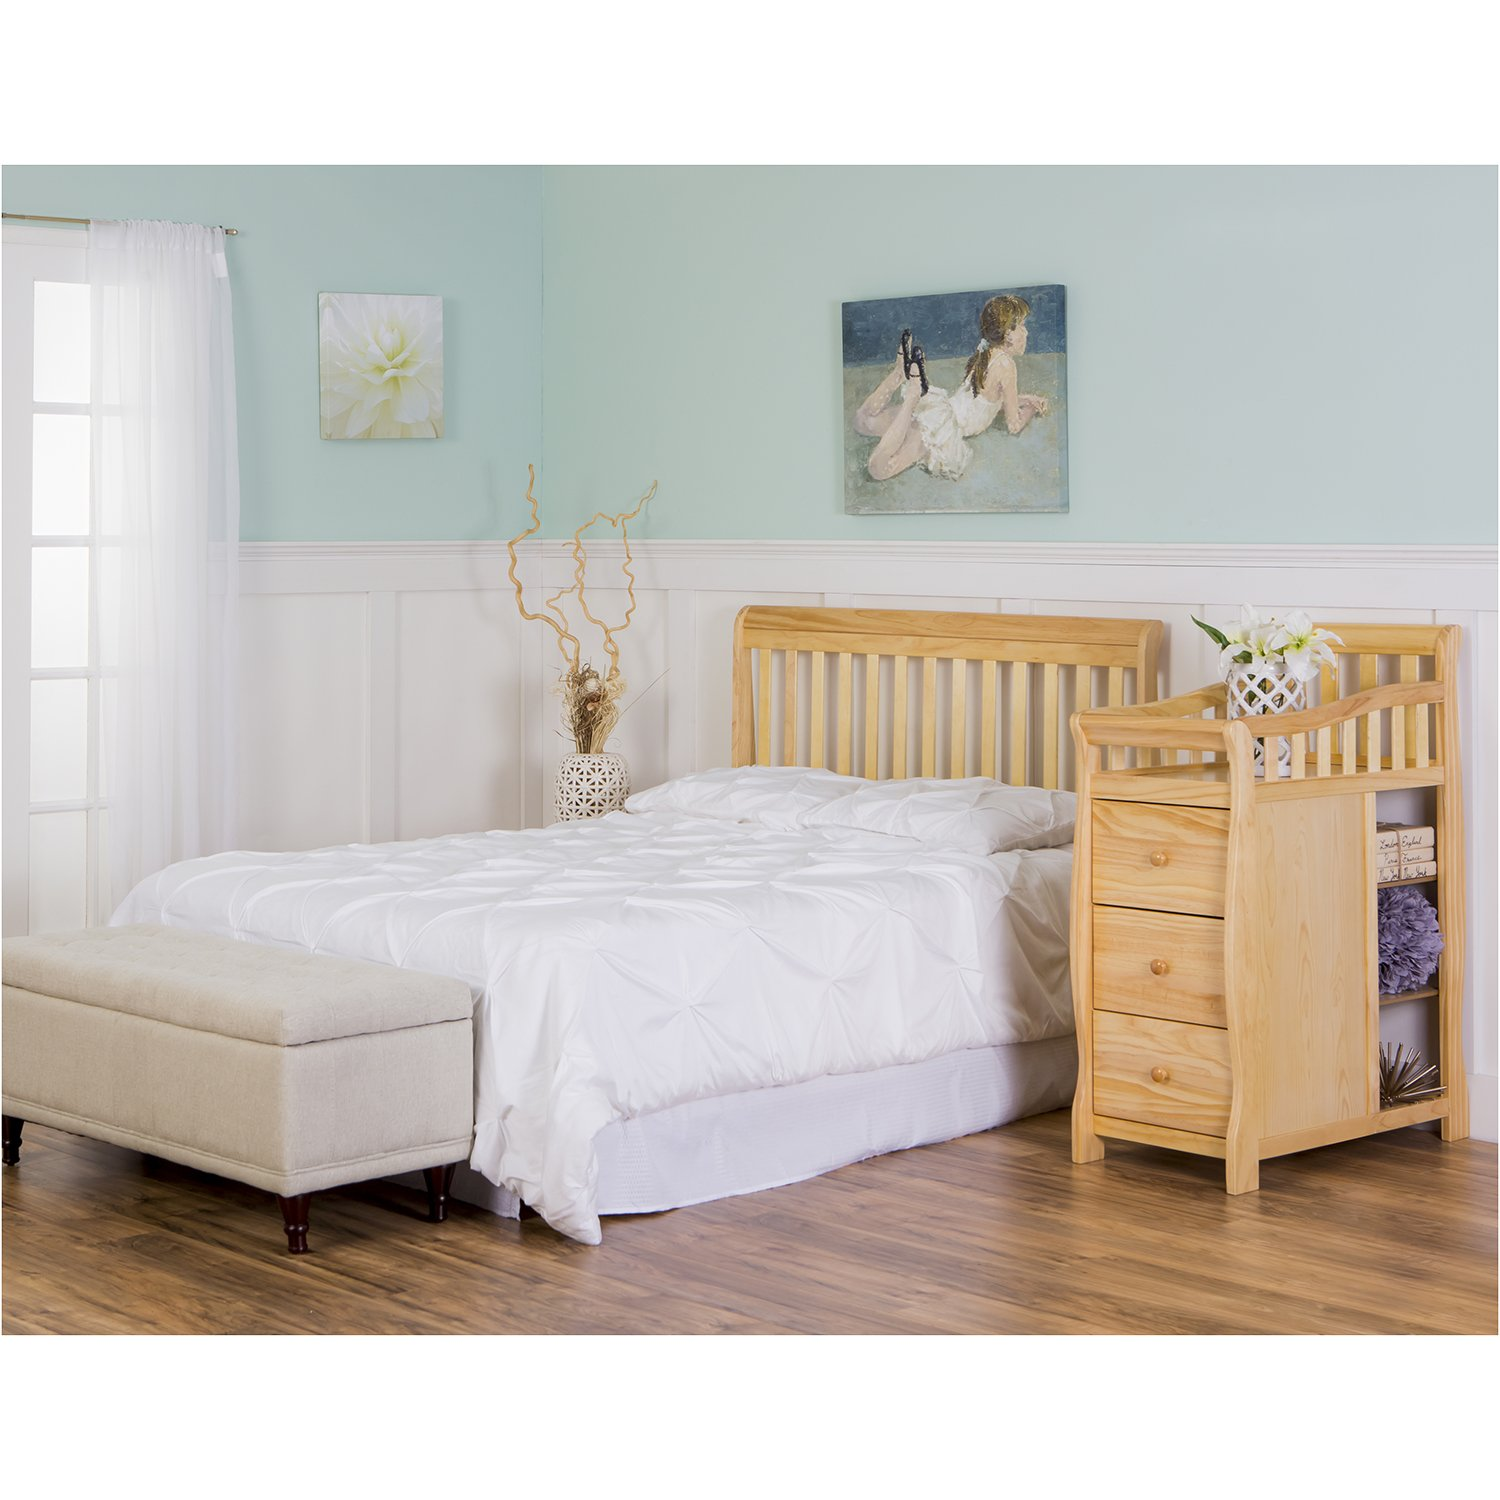 Dream On Me 5 in 1 Brody Convertible Crib with Changer, Natural by Dream On Me (Image #8)